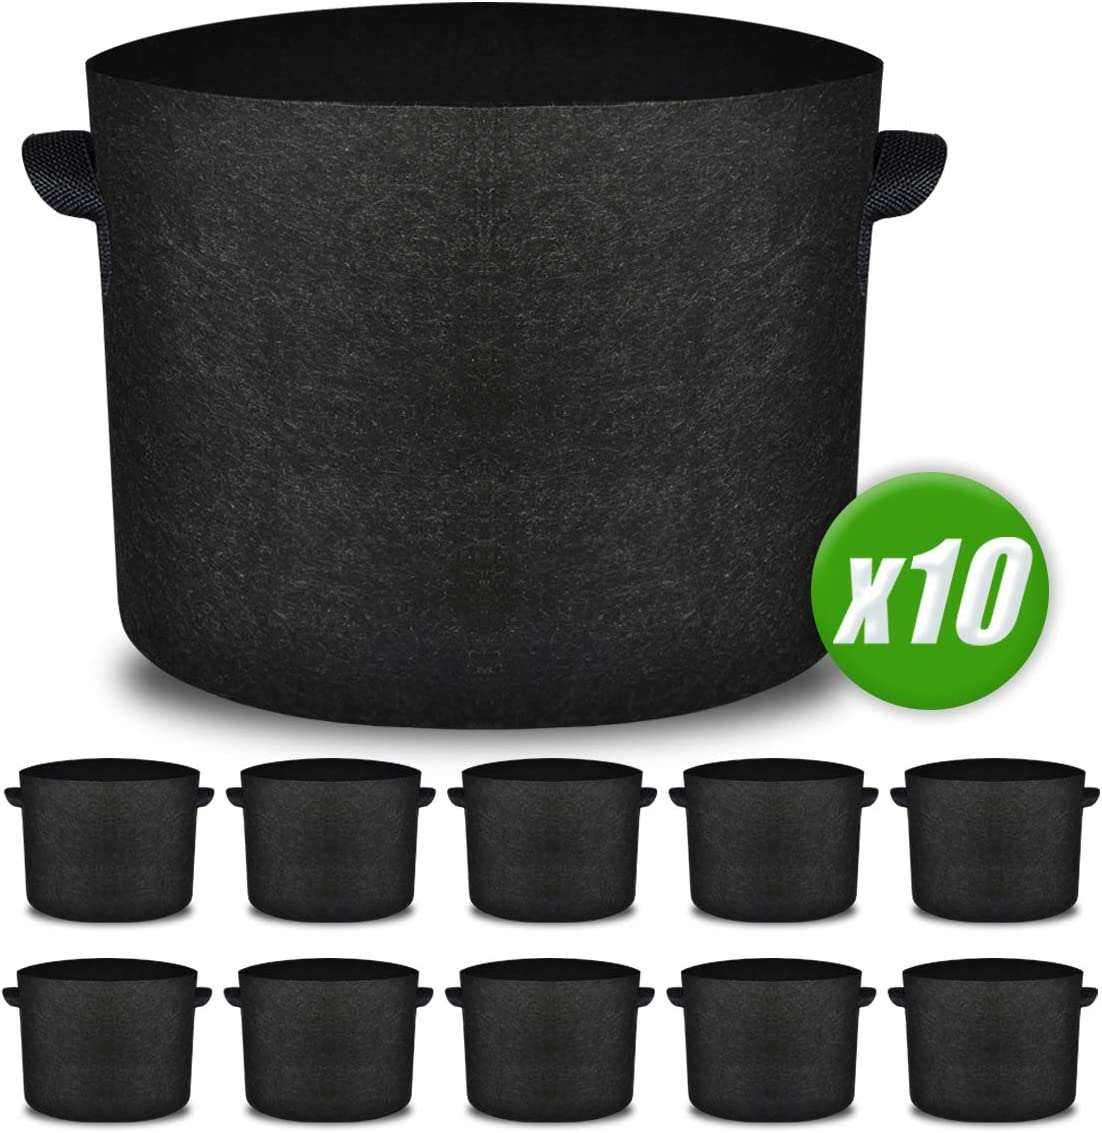 Upgraded 10 Pack 10 Gallon Grow Bags, Heavy Duty Non-Woven Fabric Plant Pots with Strong Handles, Vegetable Flower Growing Containers